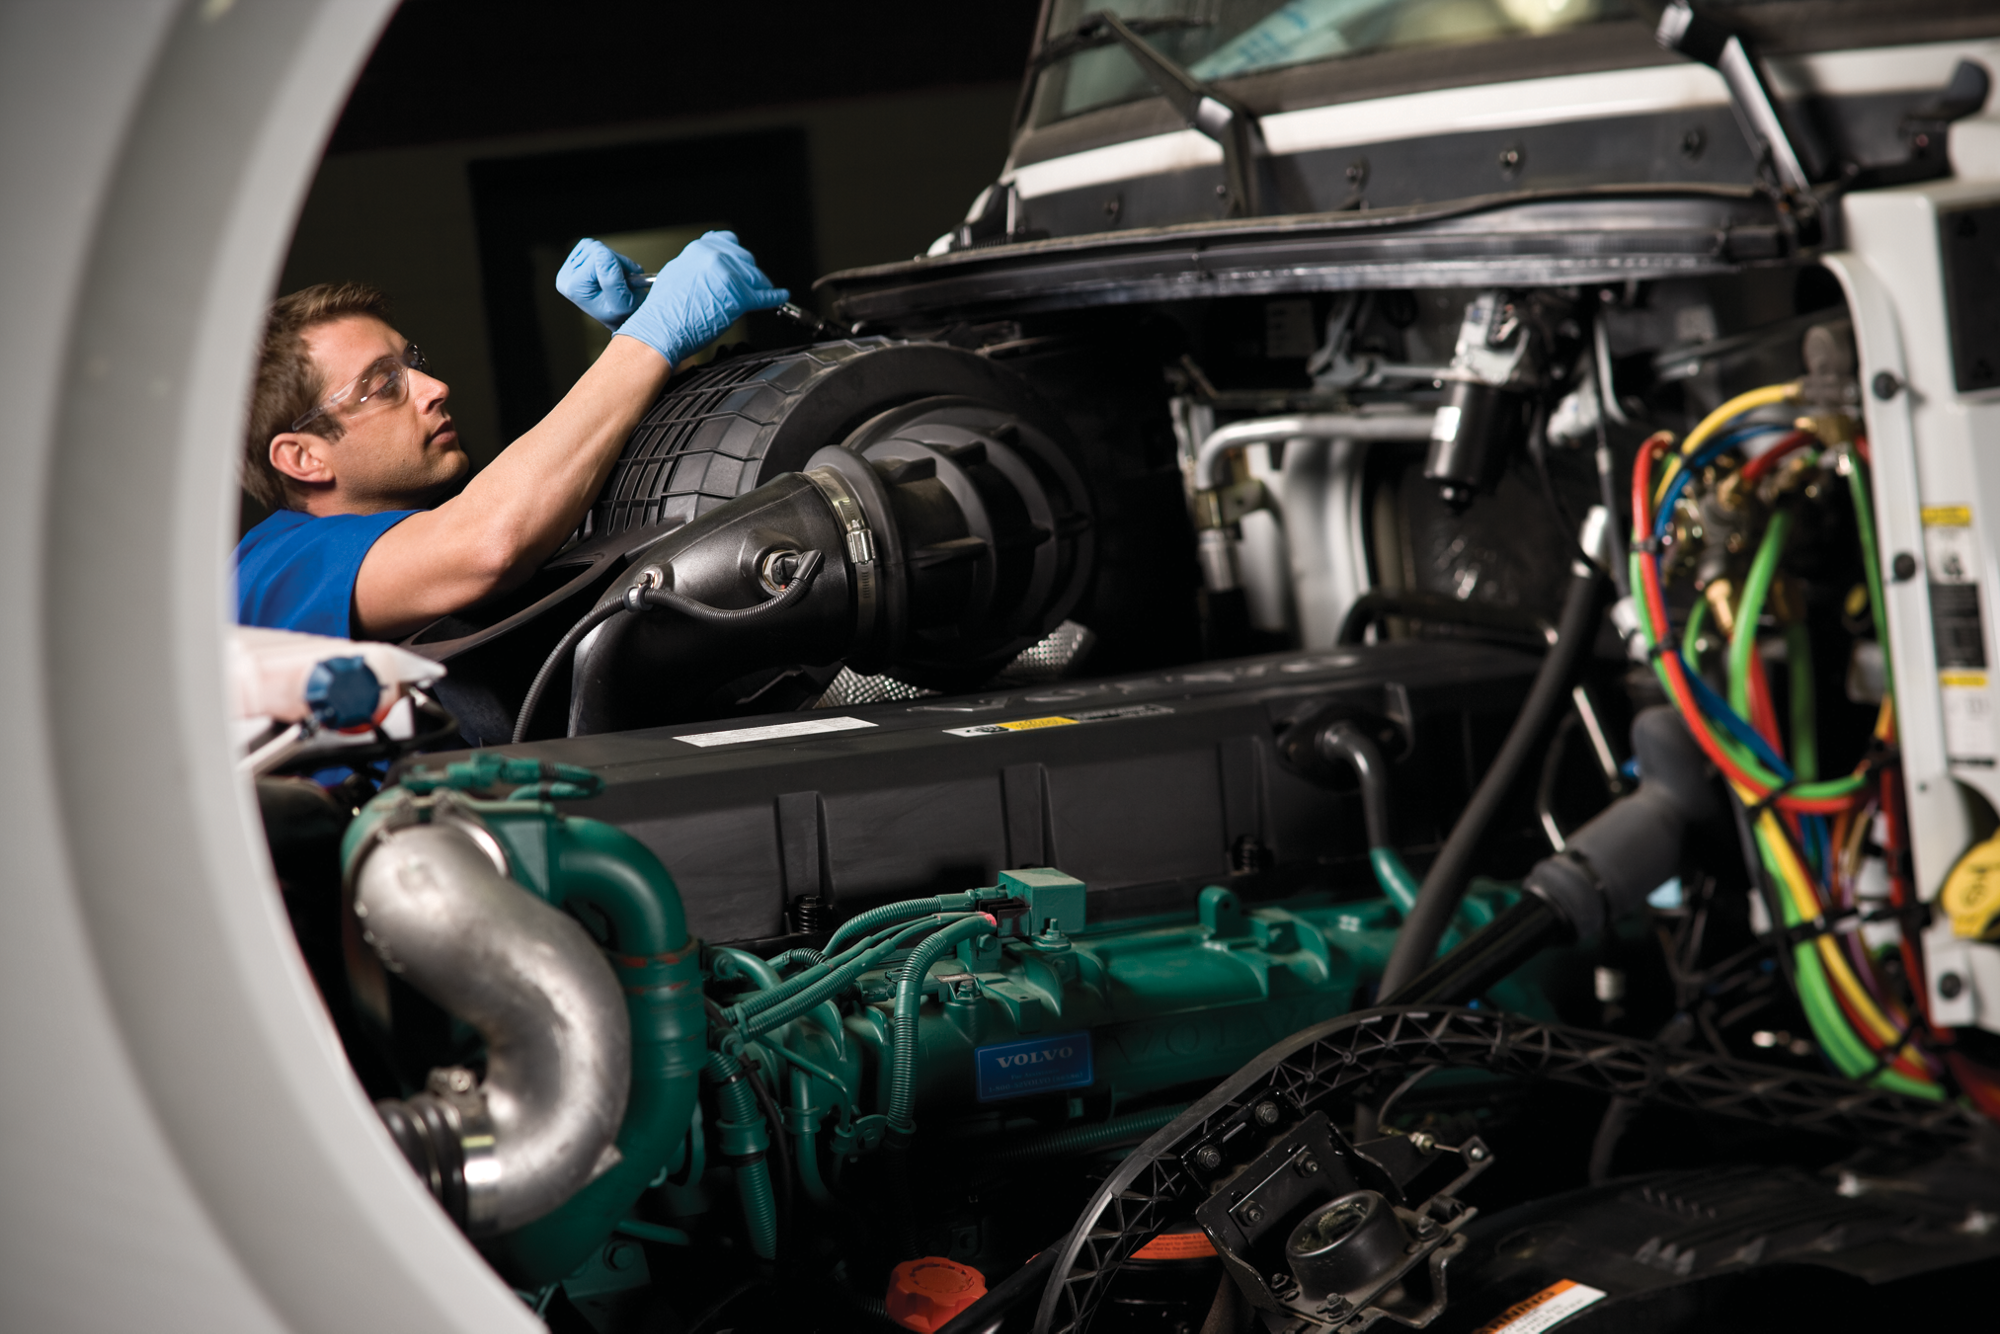 Services Include: - Authorized Commercial Vehicle Inspection Facility (CVIP)Preventative maintenanceBreakdown repairsDiagnosticsEngine and Transmission workElectrical troubleshootingA/C repairAuthorized Mack & Volvo Truck warranty facility